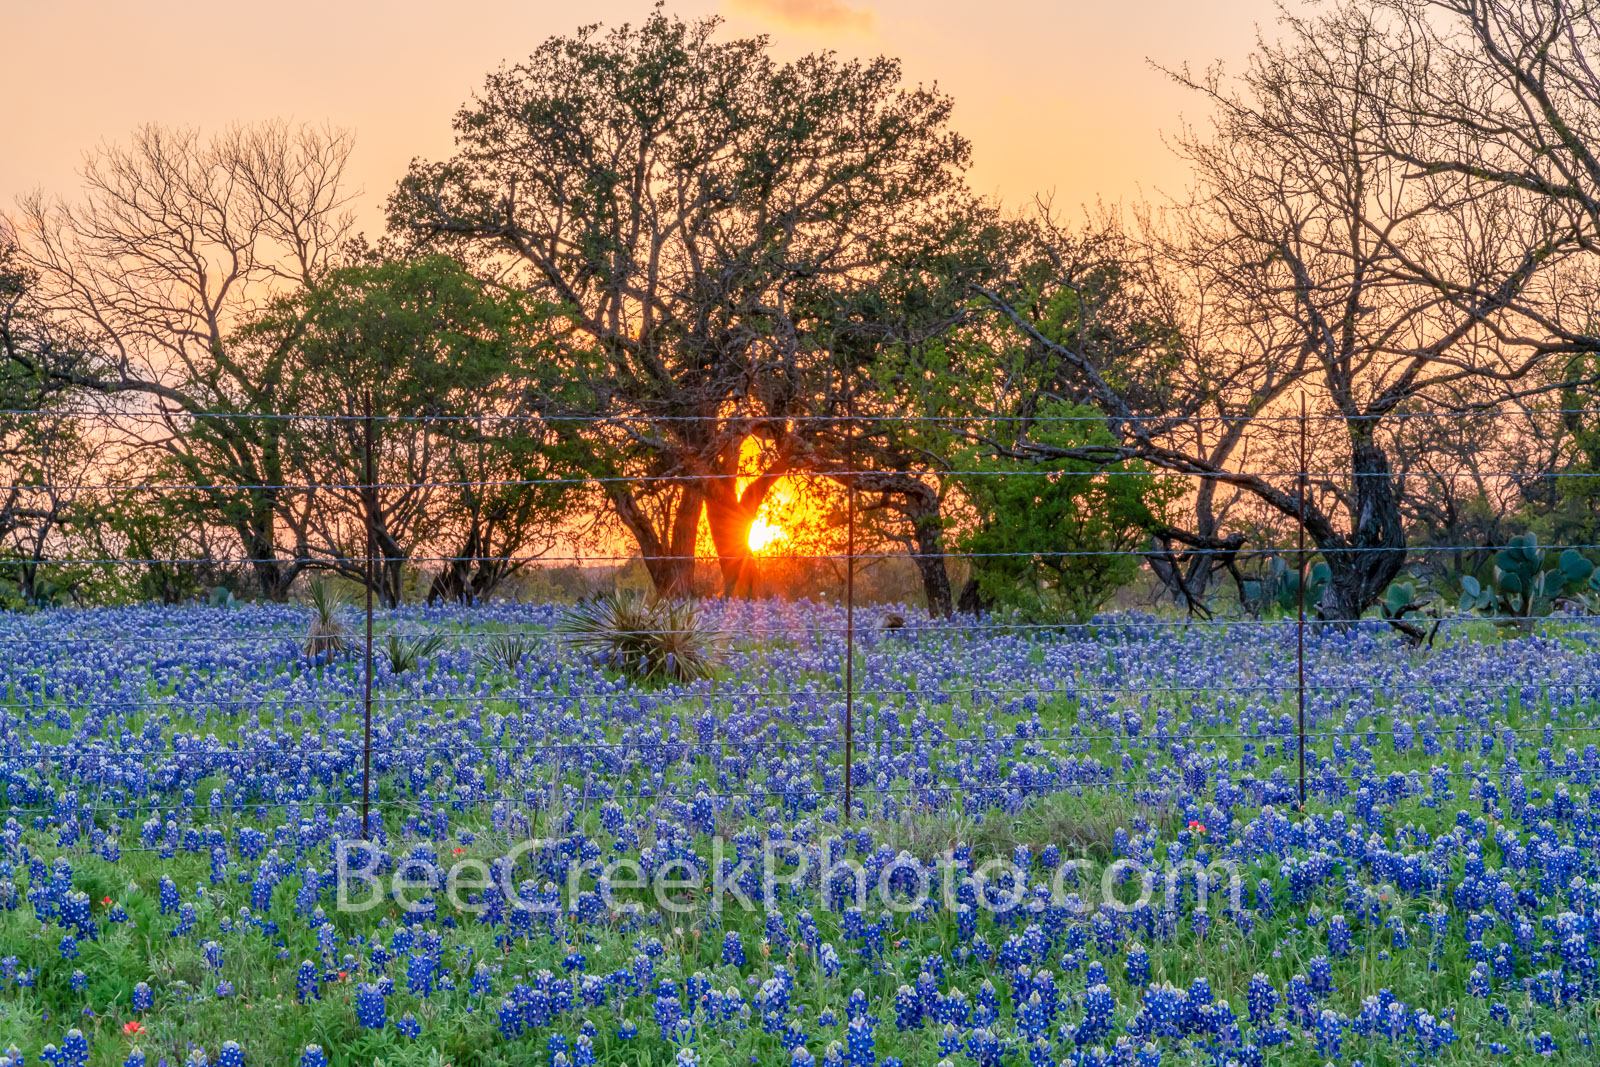 Rural Texas Bluebonnet Sunset - Bluebonnet sunset through the trees in the Texas hill country. North of Llano Texas we capture...